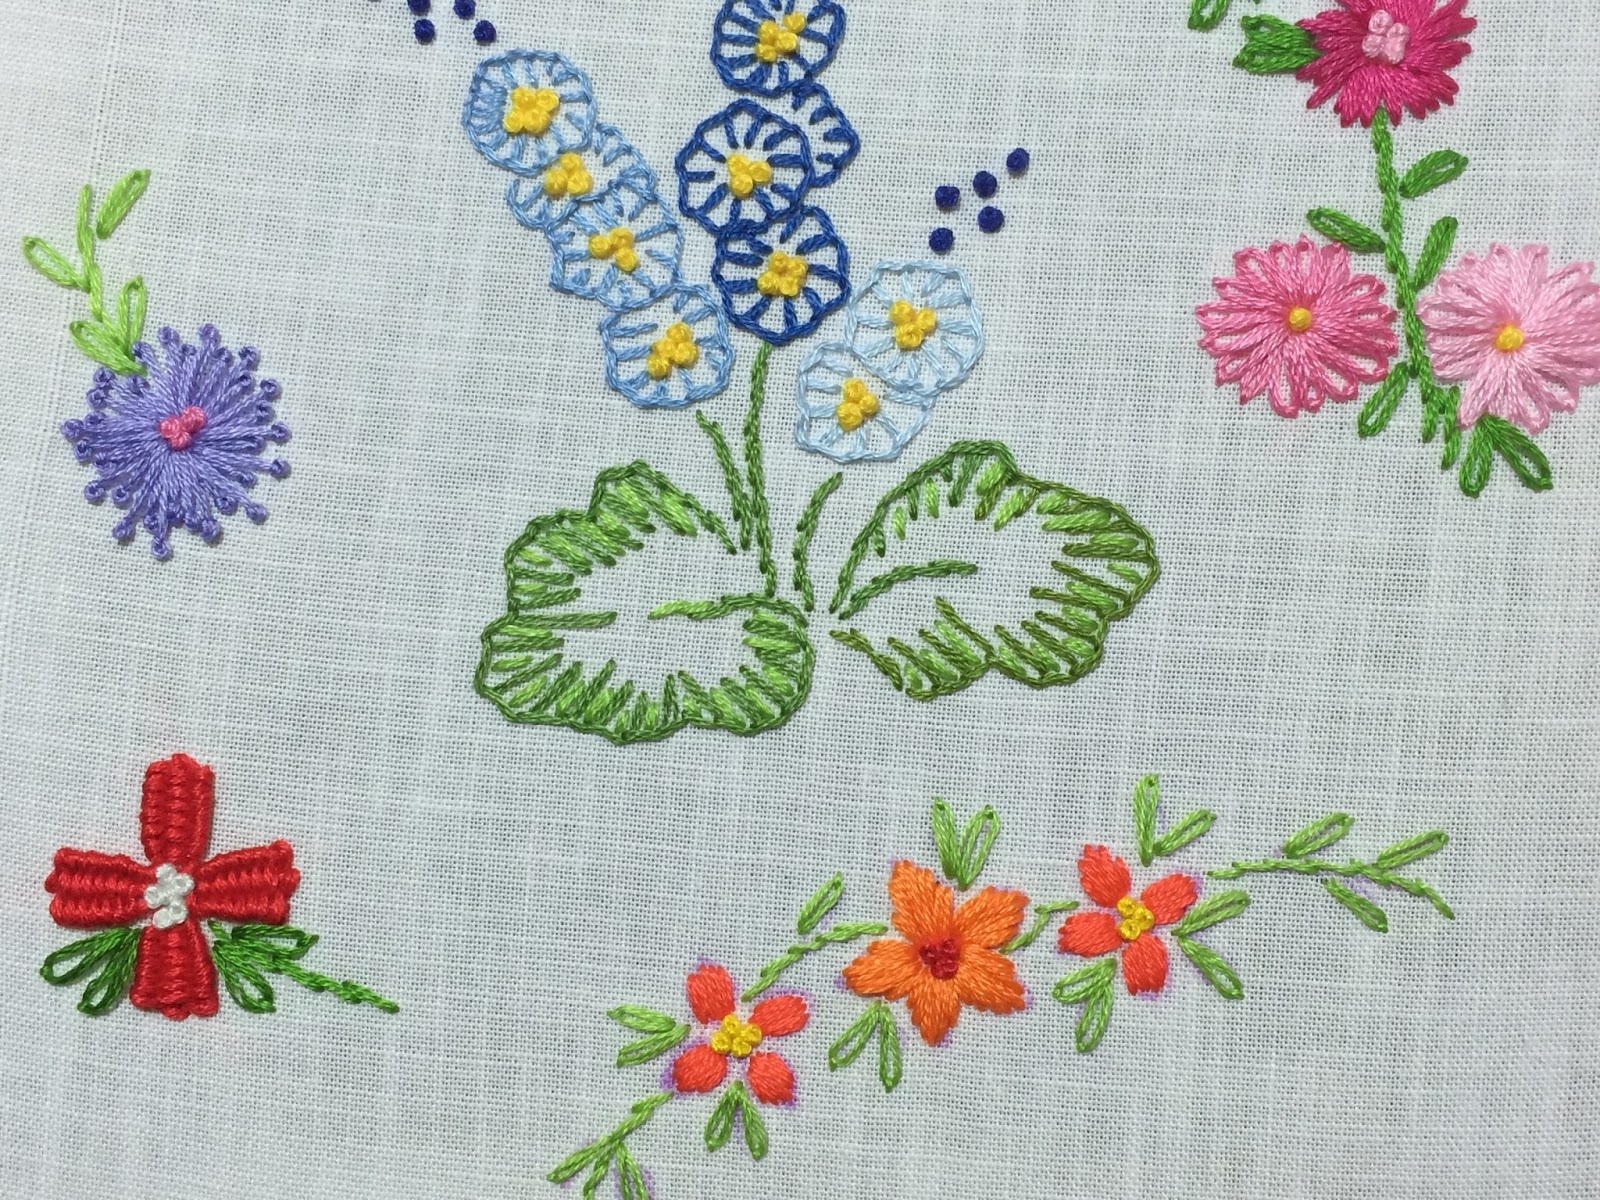 satin stitch embroidery flower